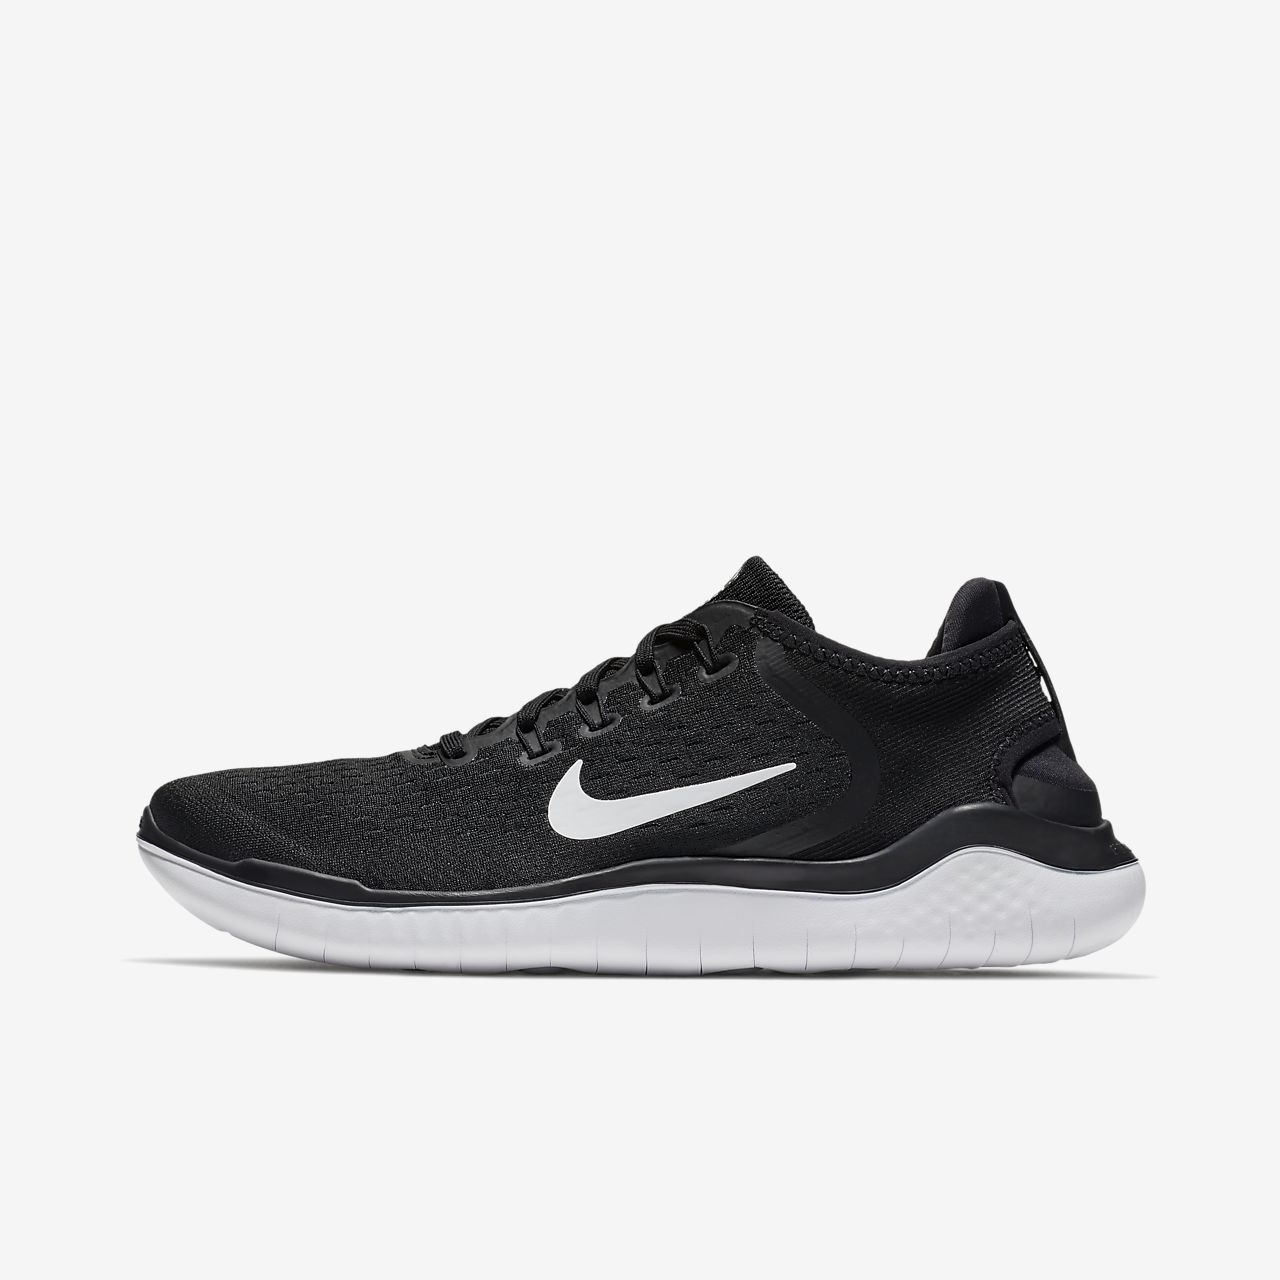 54ed6f87d037 Nike Free RN 2018 Men s Running Shoe. Nike.com IN